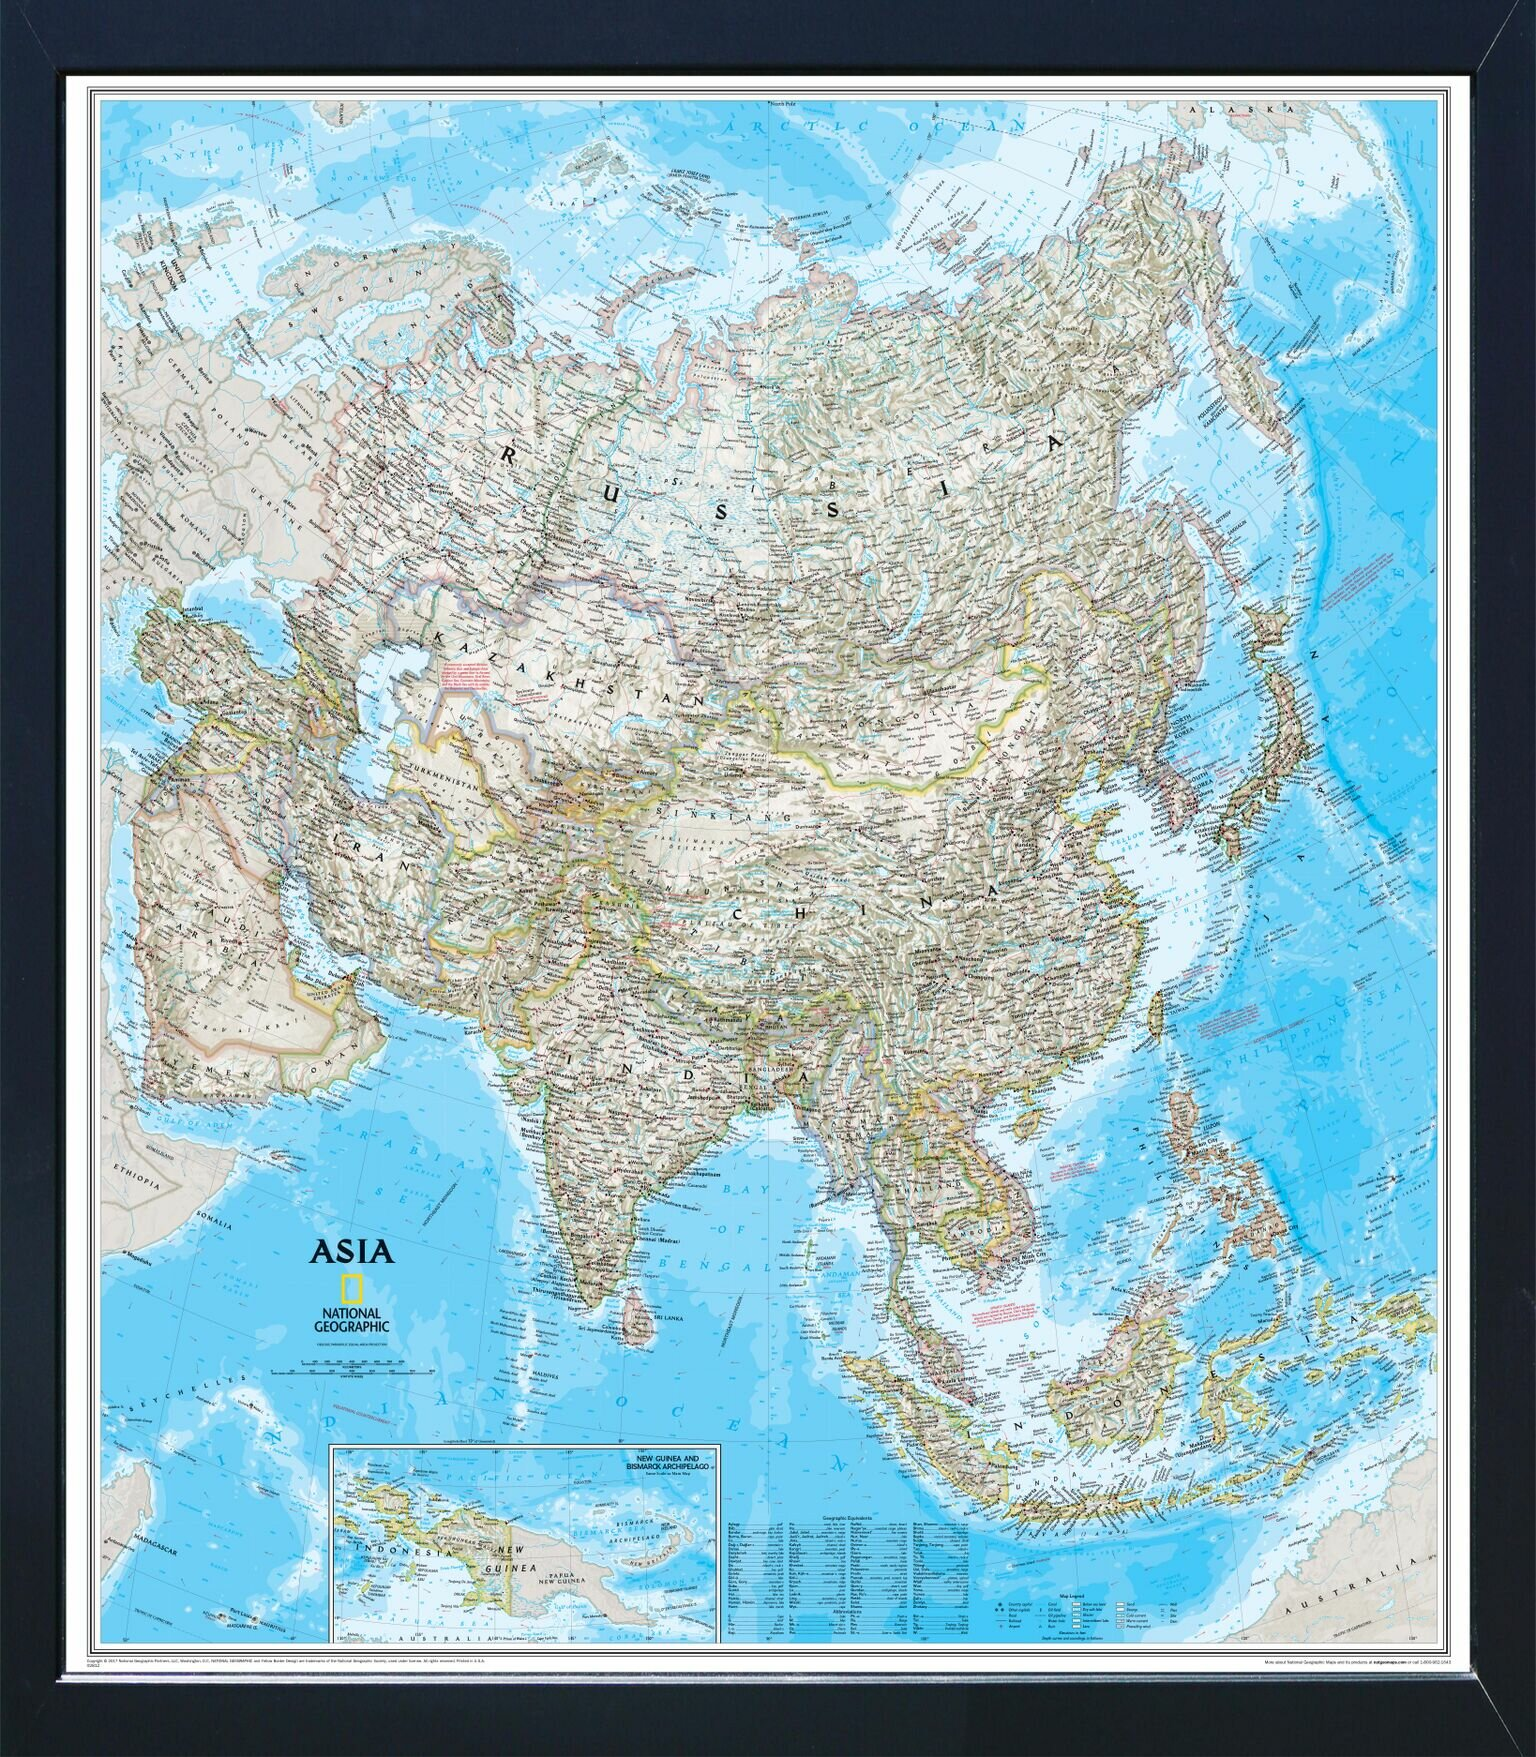 Breakwater Bay Cadnite Magnetic Travel Map National Geographic Asia Classic Wayfair